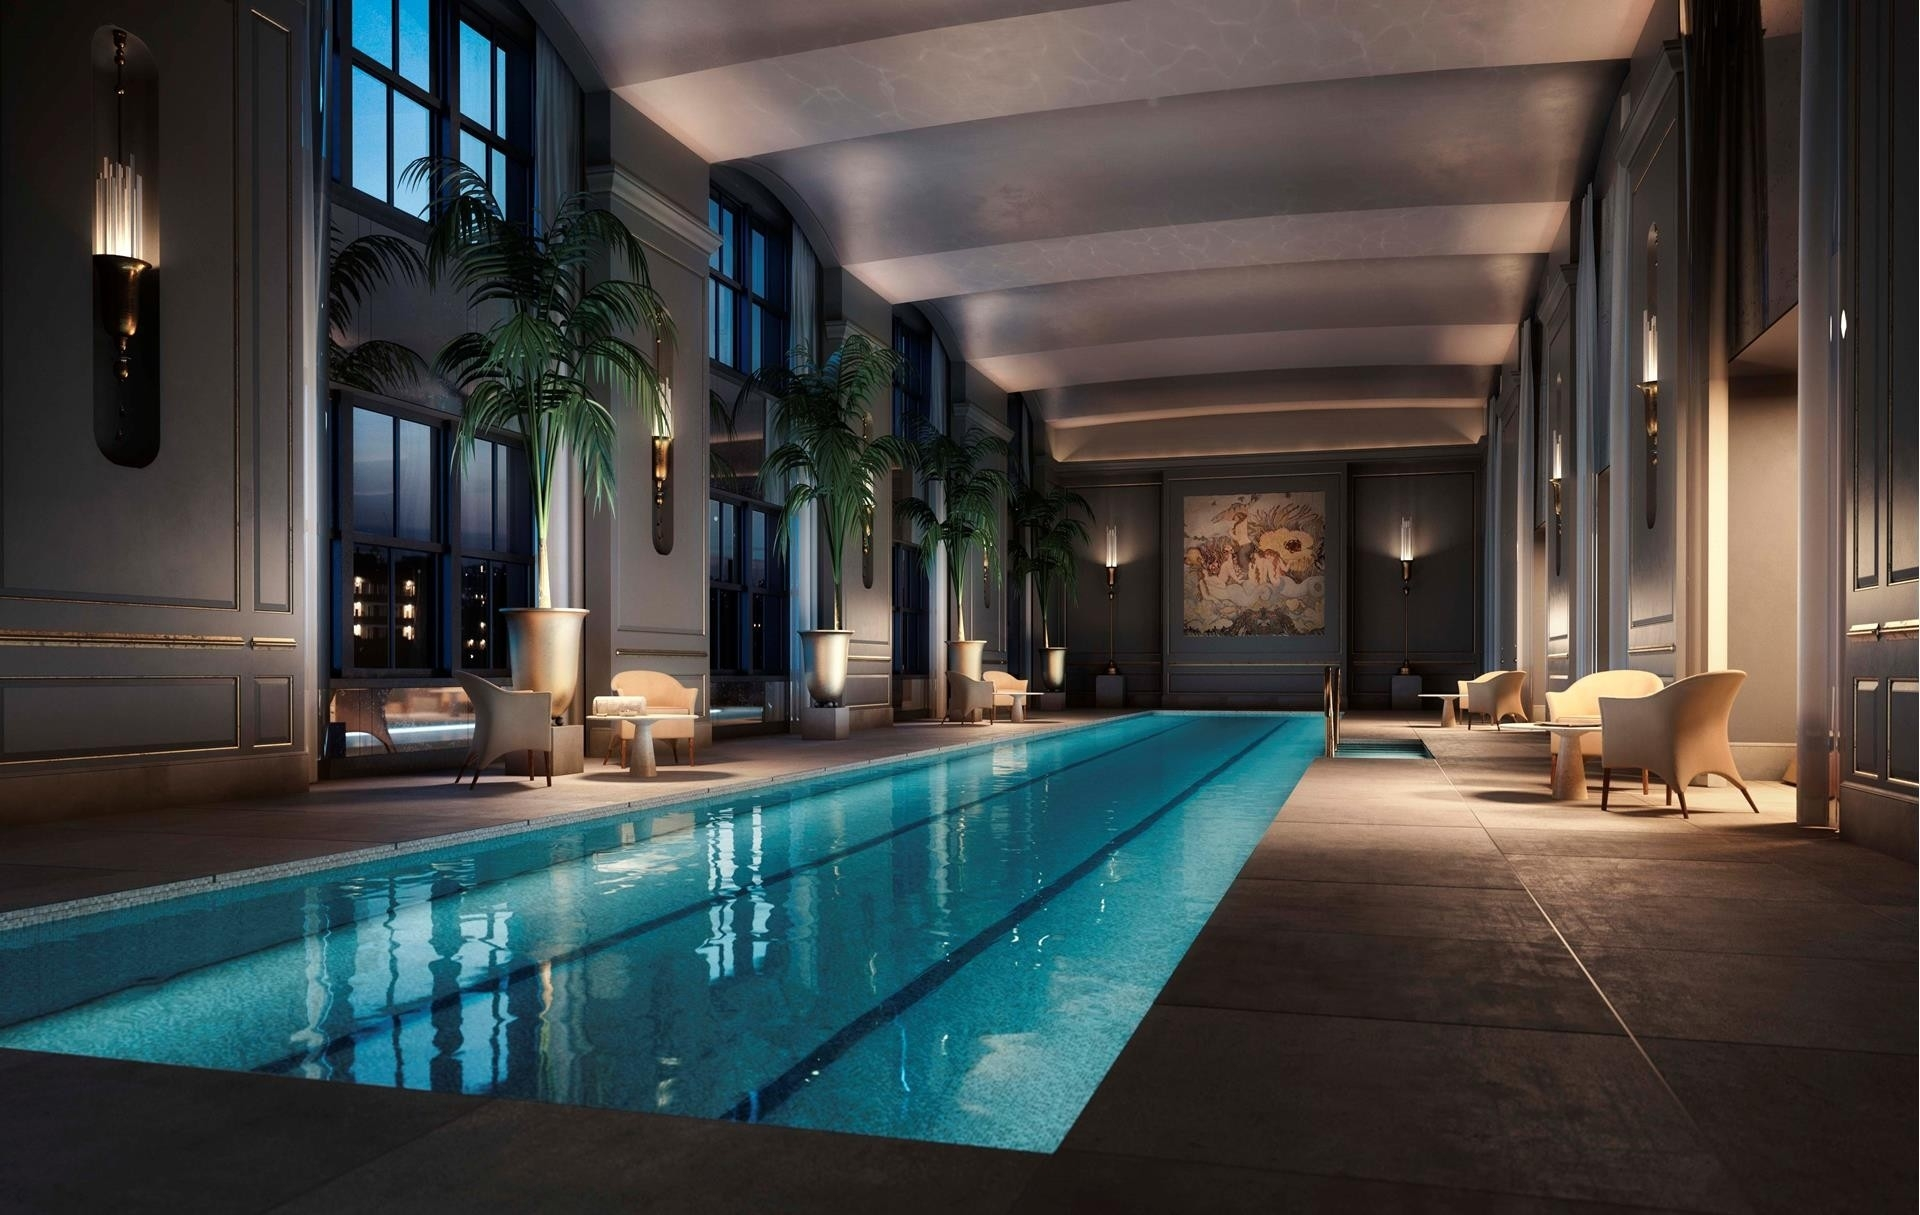 15. Condominiums for Sale at 111 W 57TH ST , 55 Midtown West, New York, NY 10019